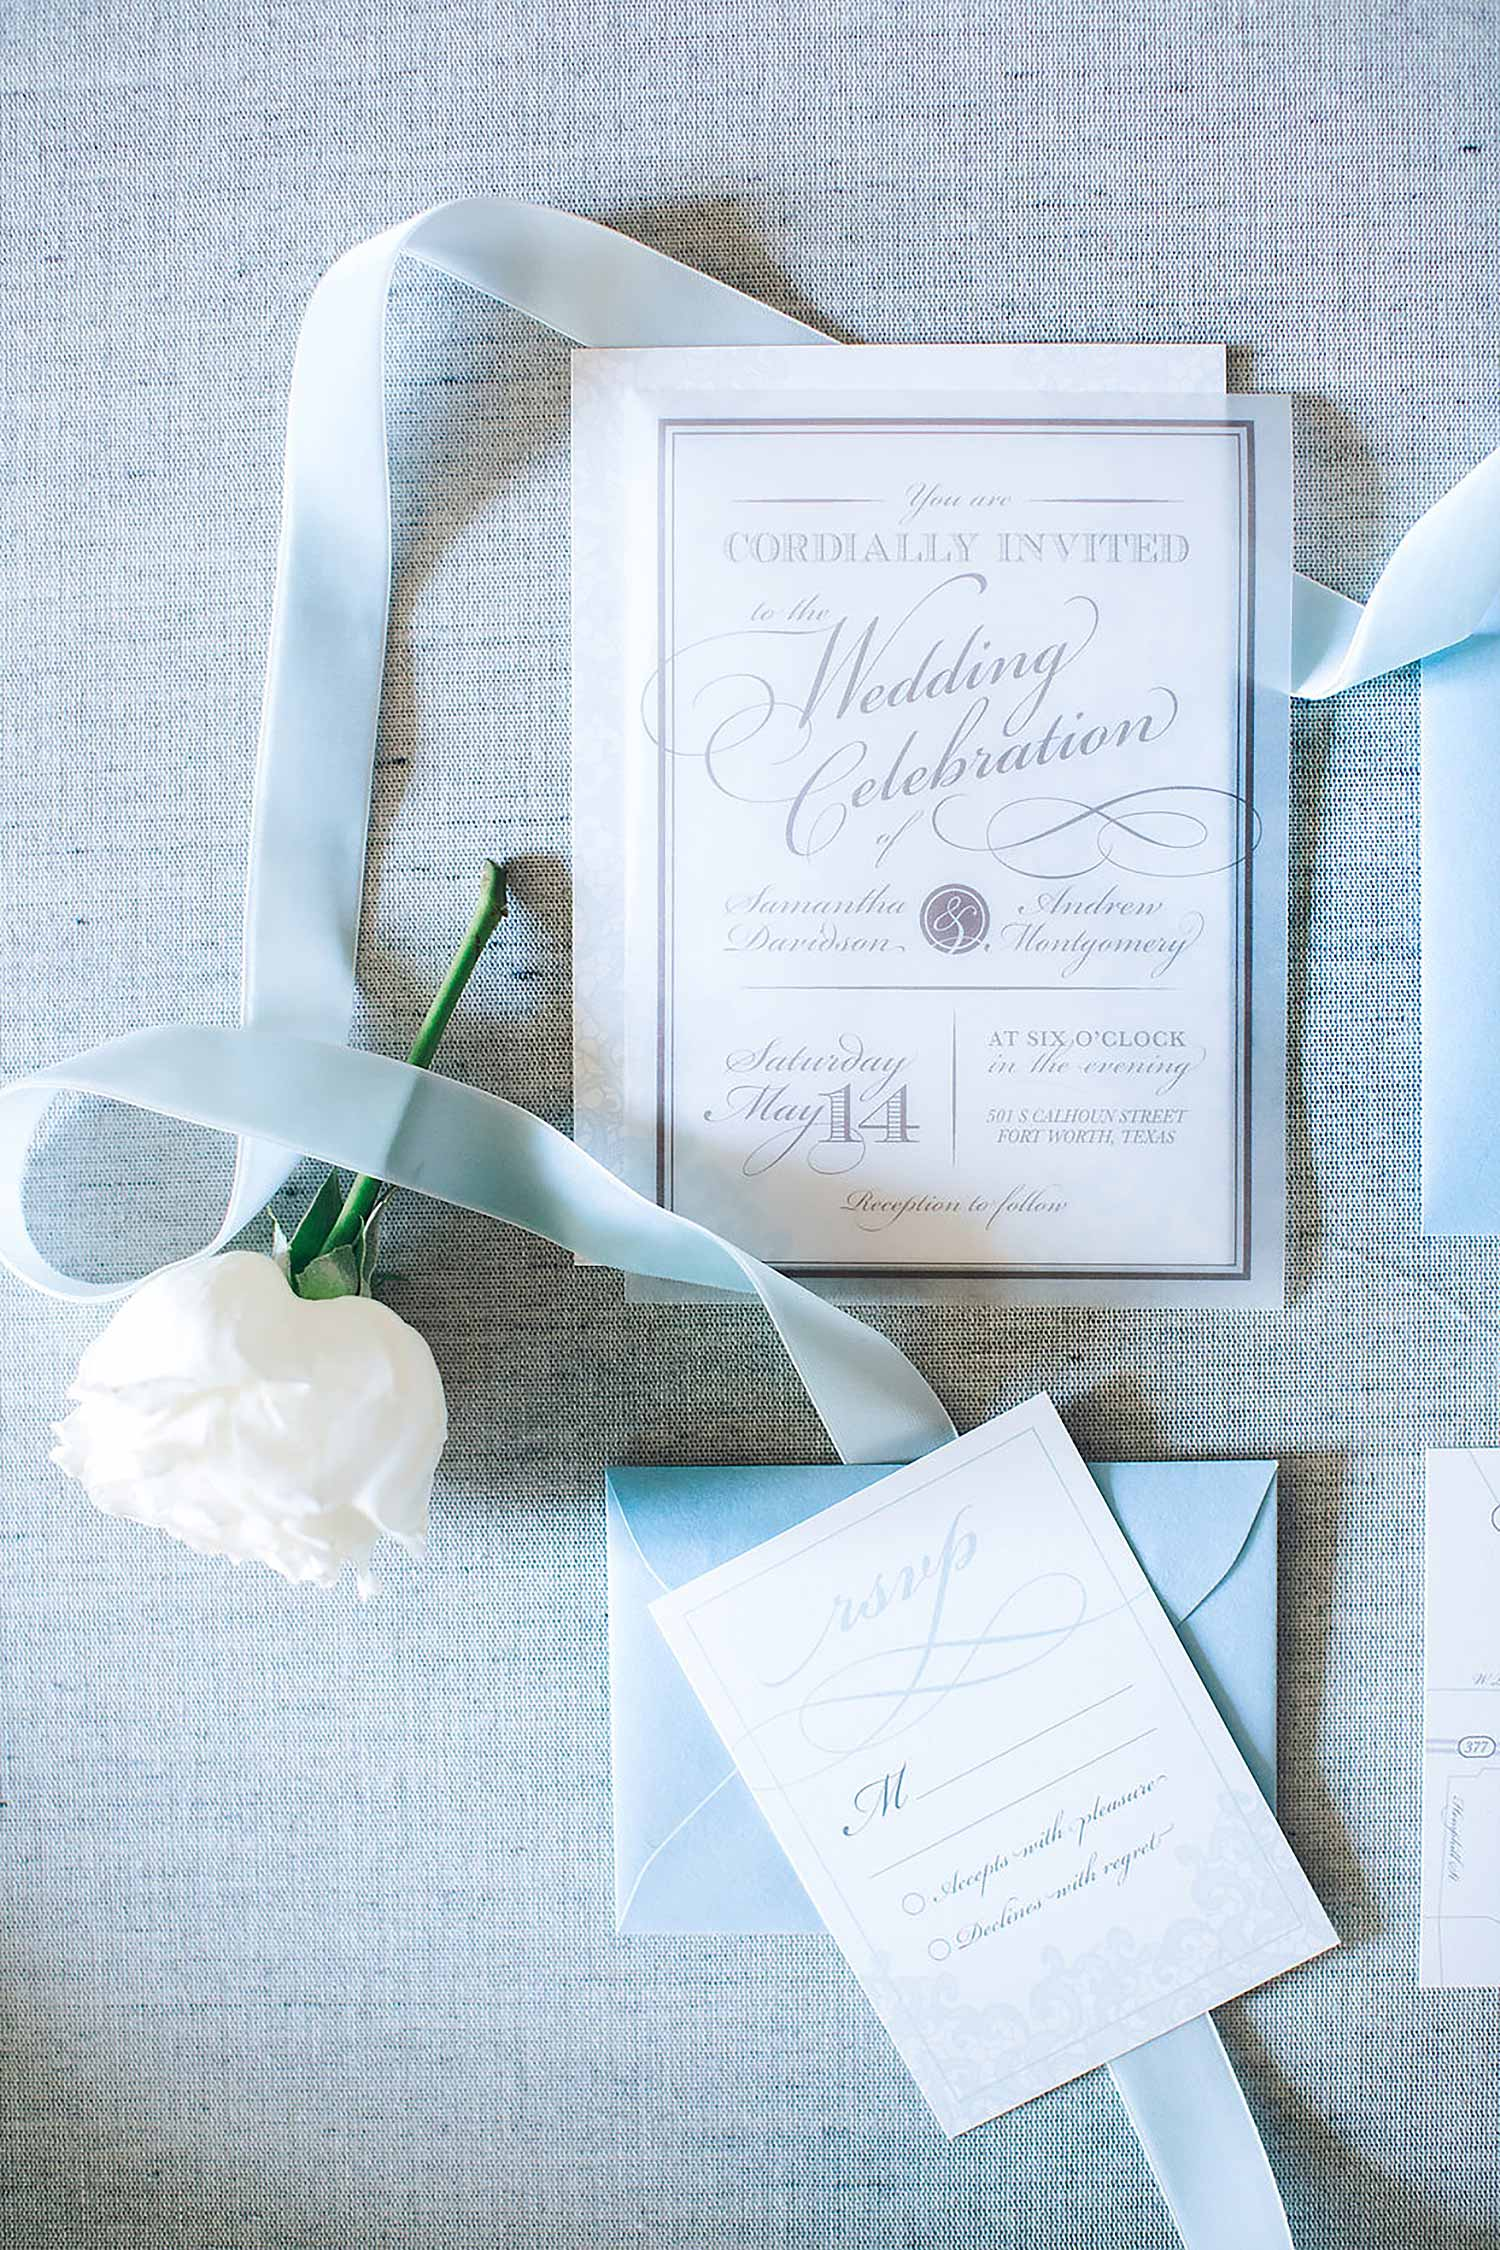 Acrylic wedding inviation and dusty blue envelope with a white rose